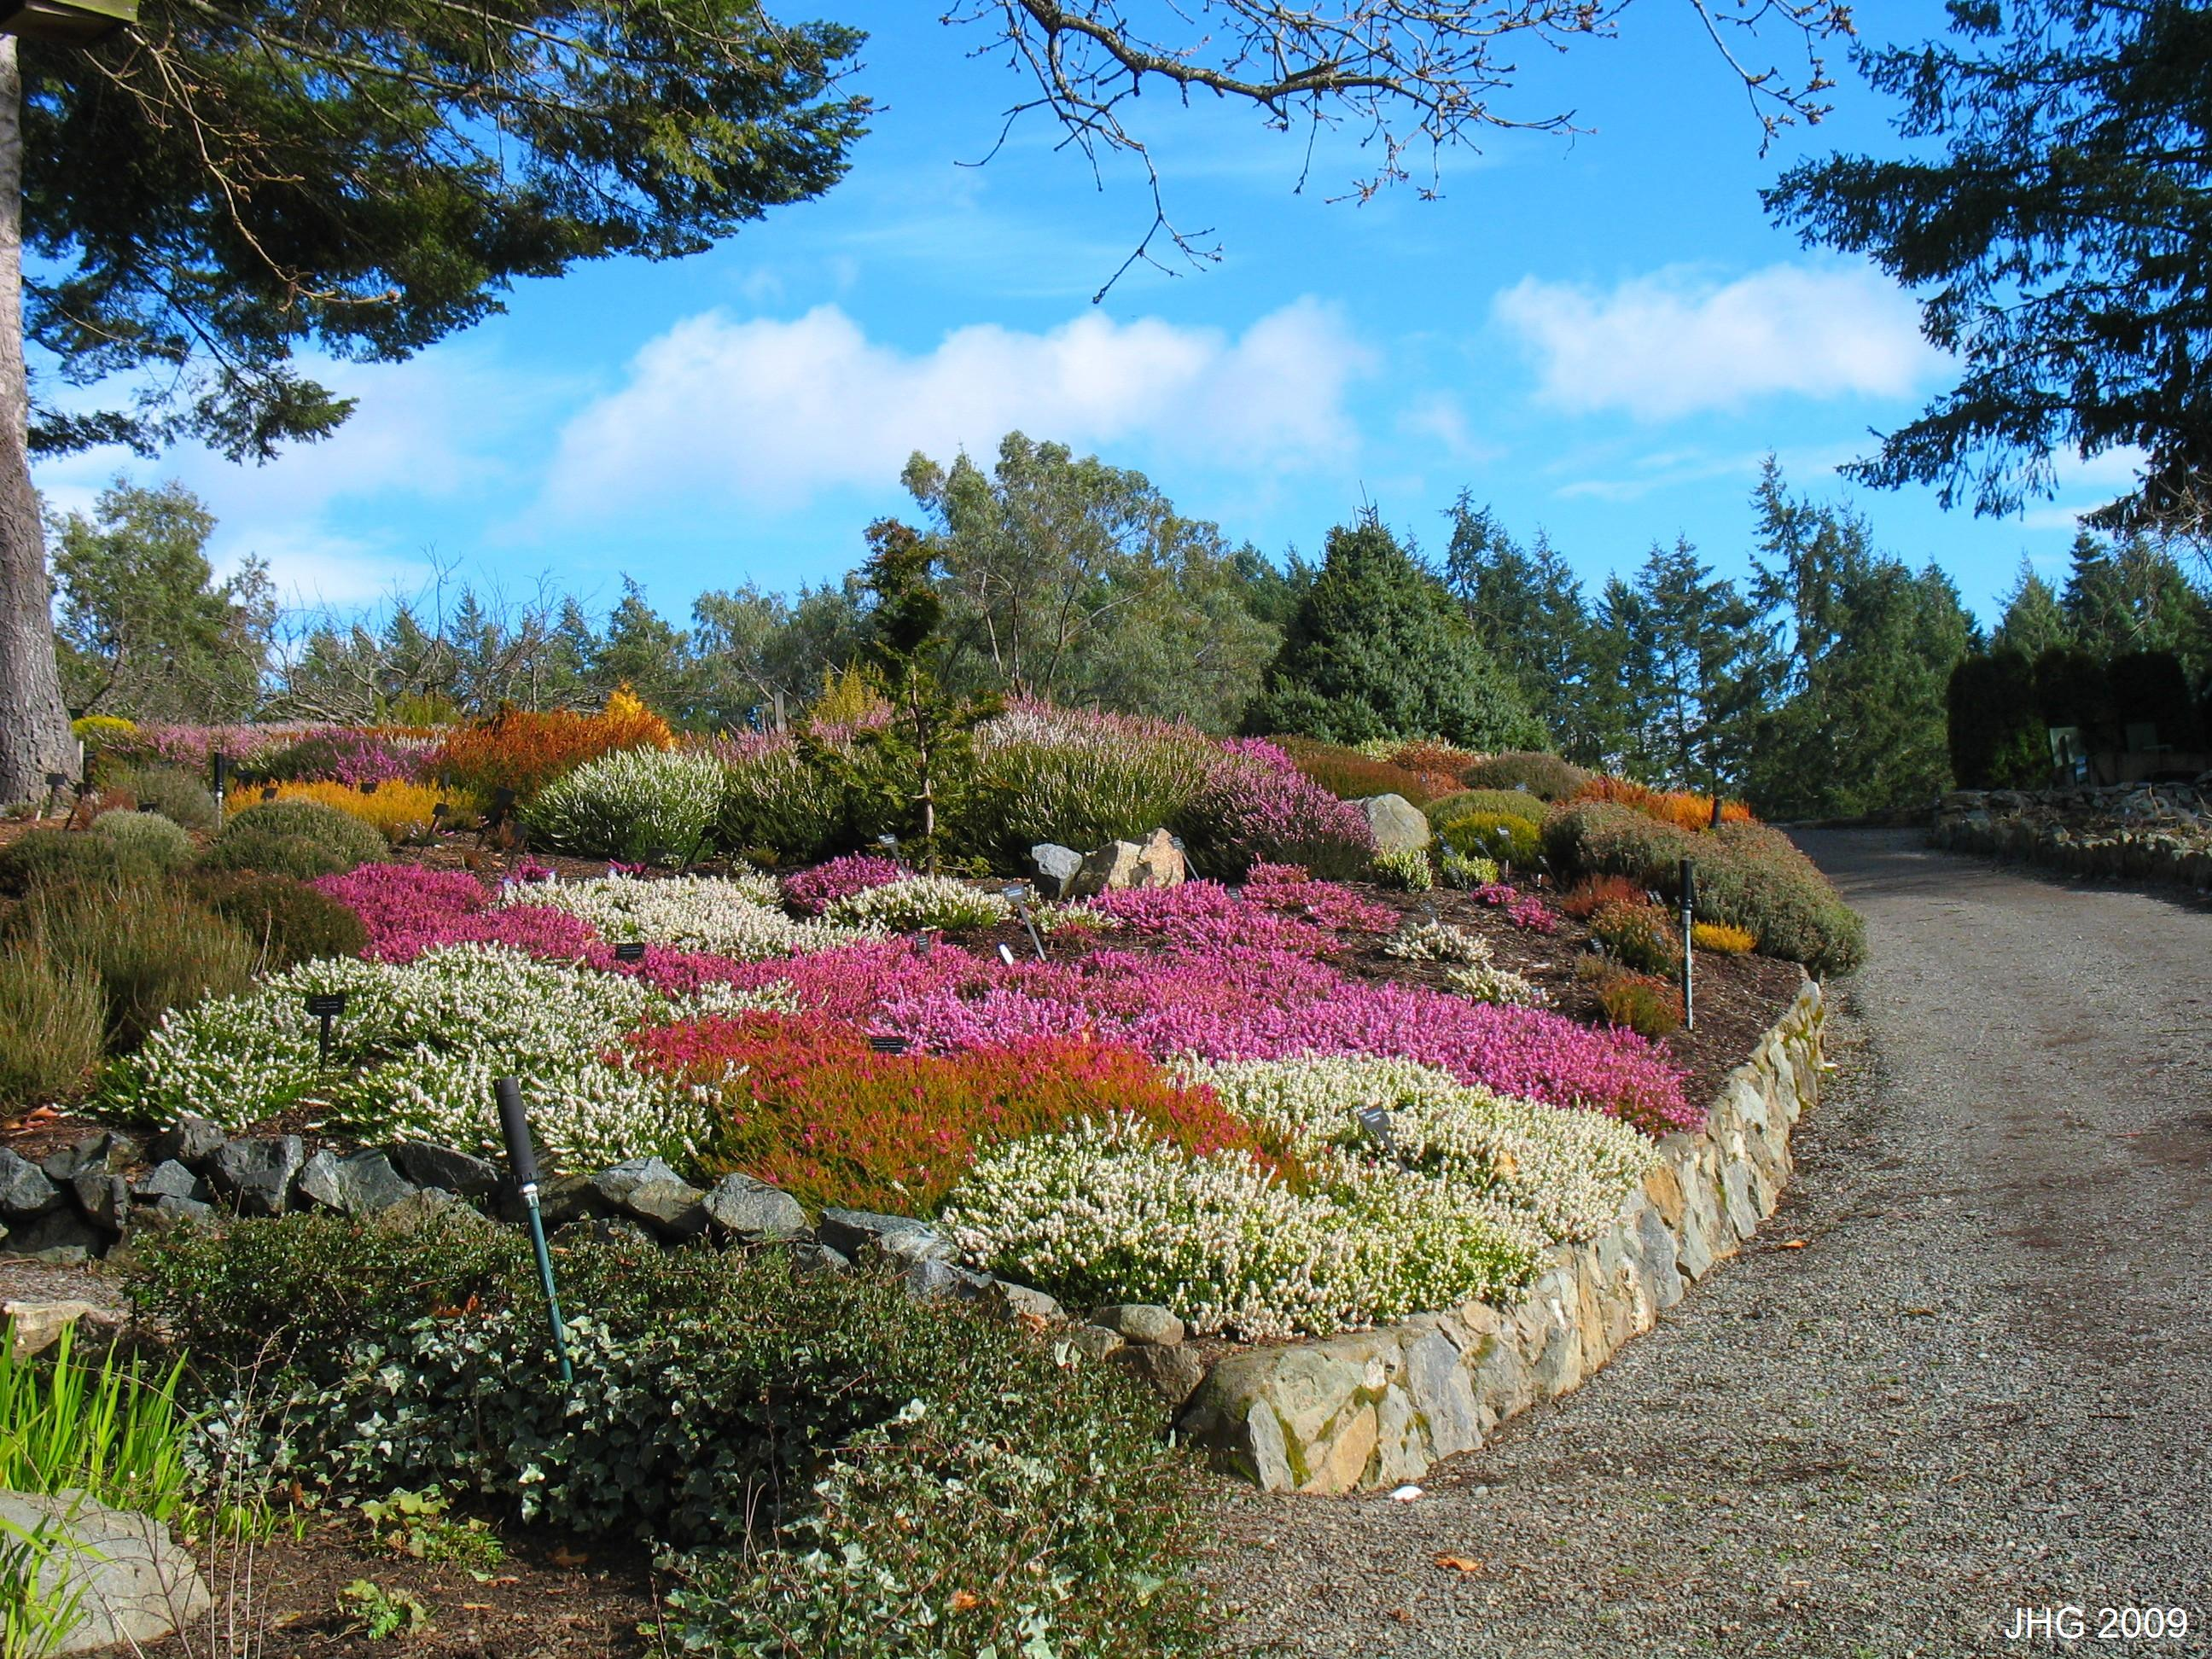 Dazzling color display with dwarf conifer in the background.